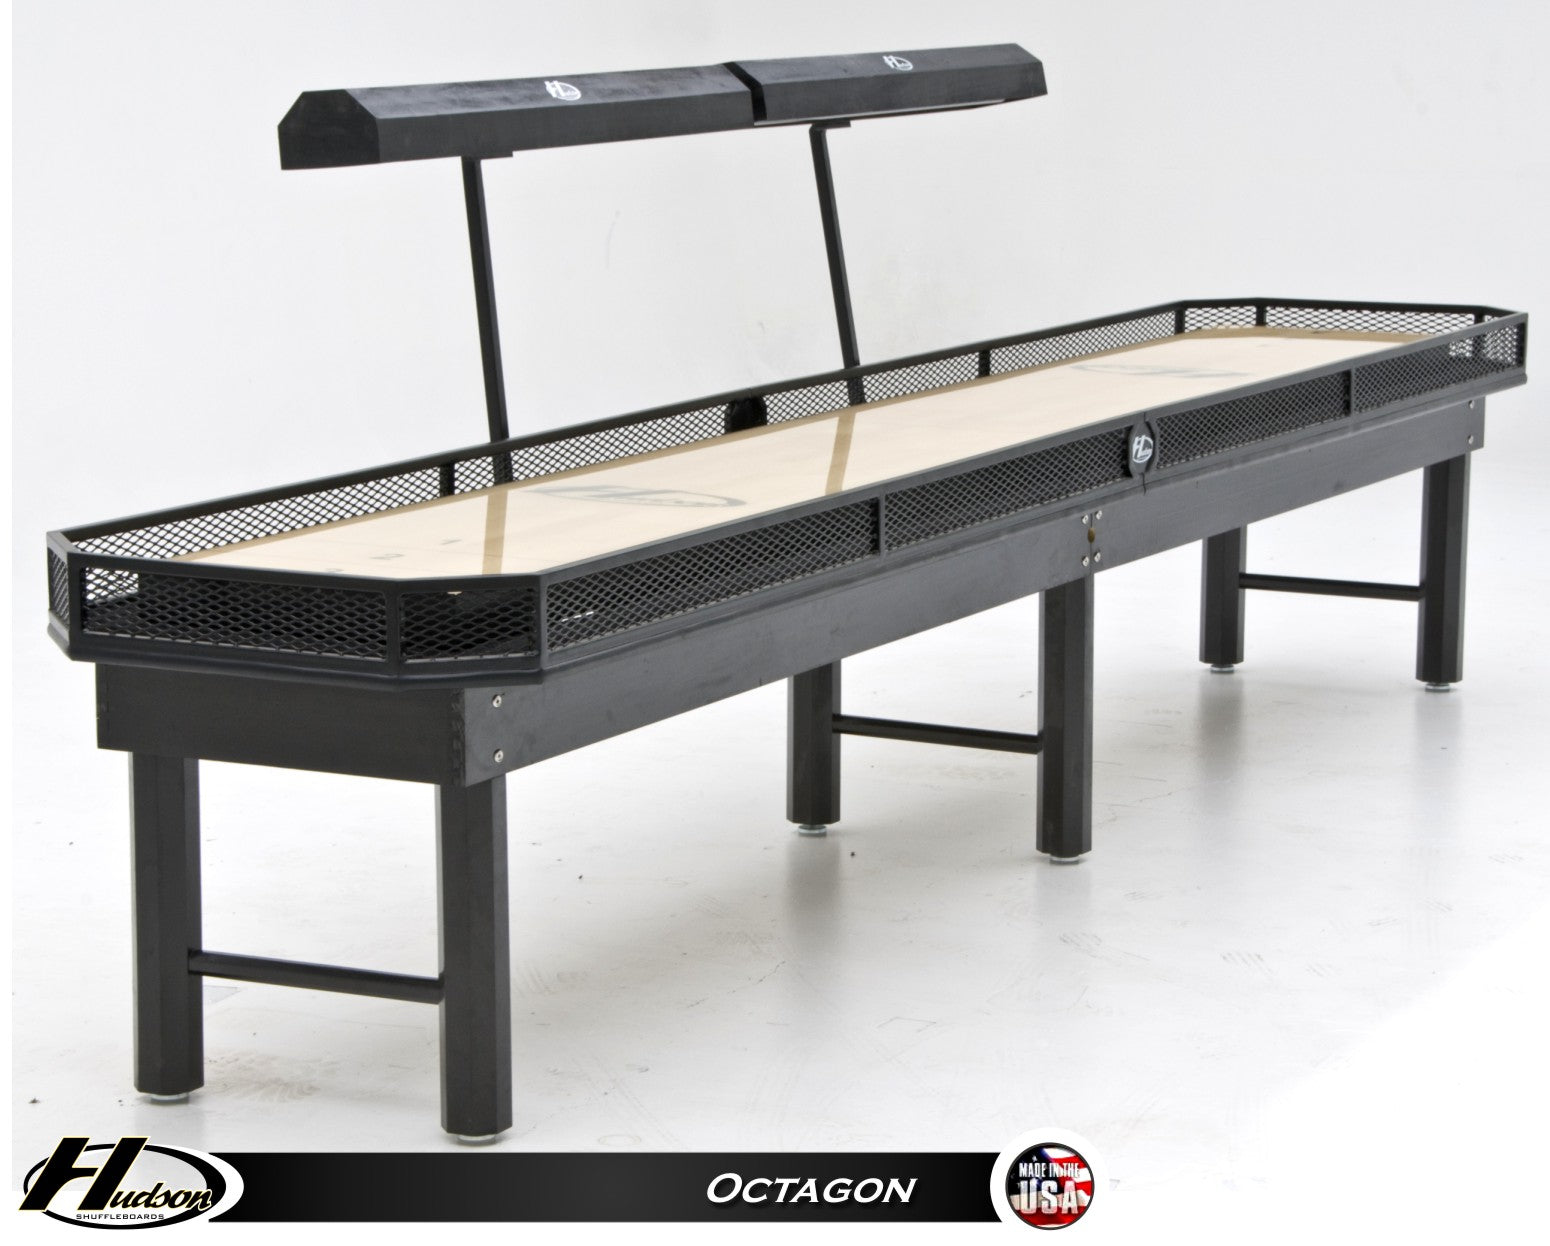 Octagon Steel Shuffleboard Table